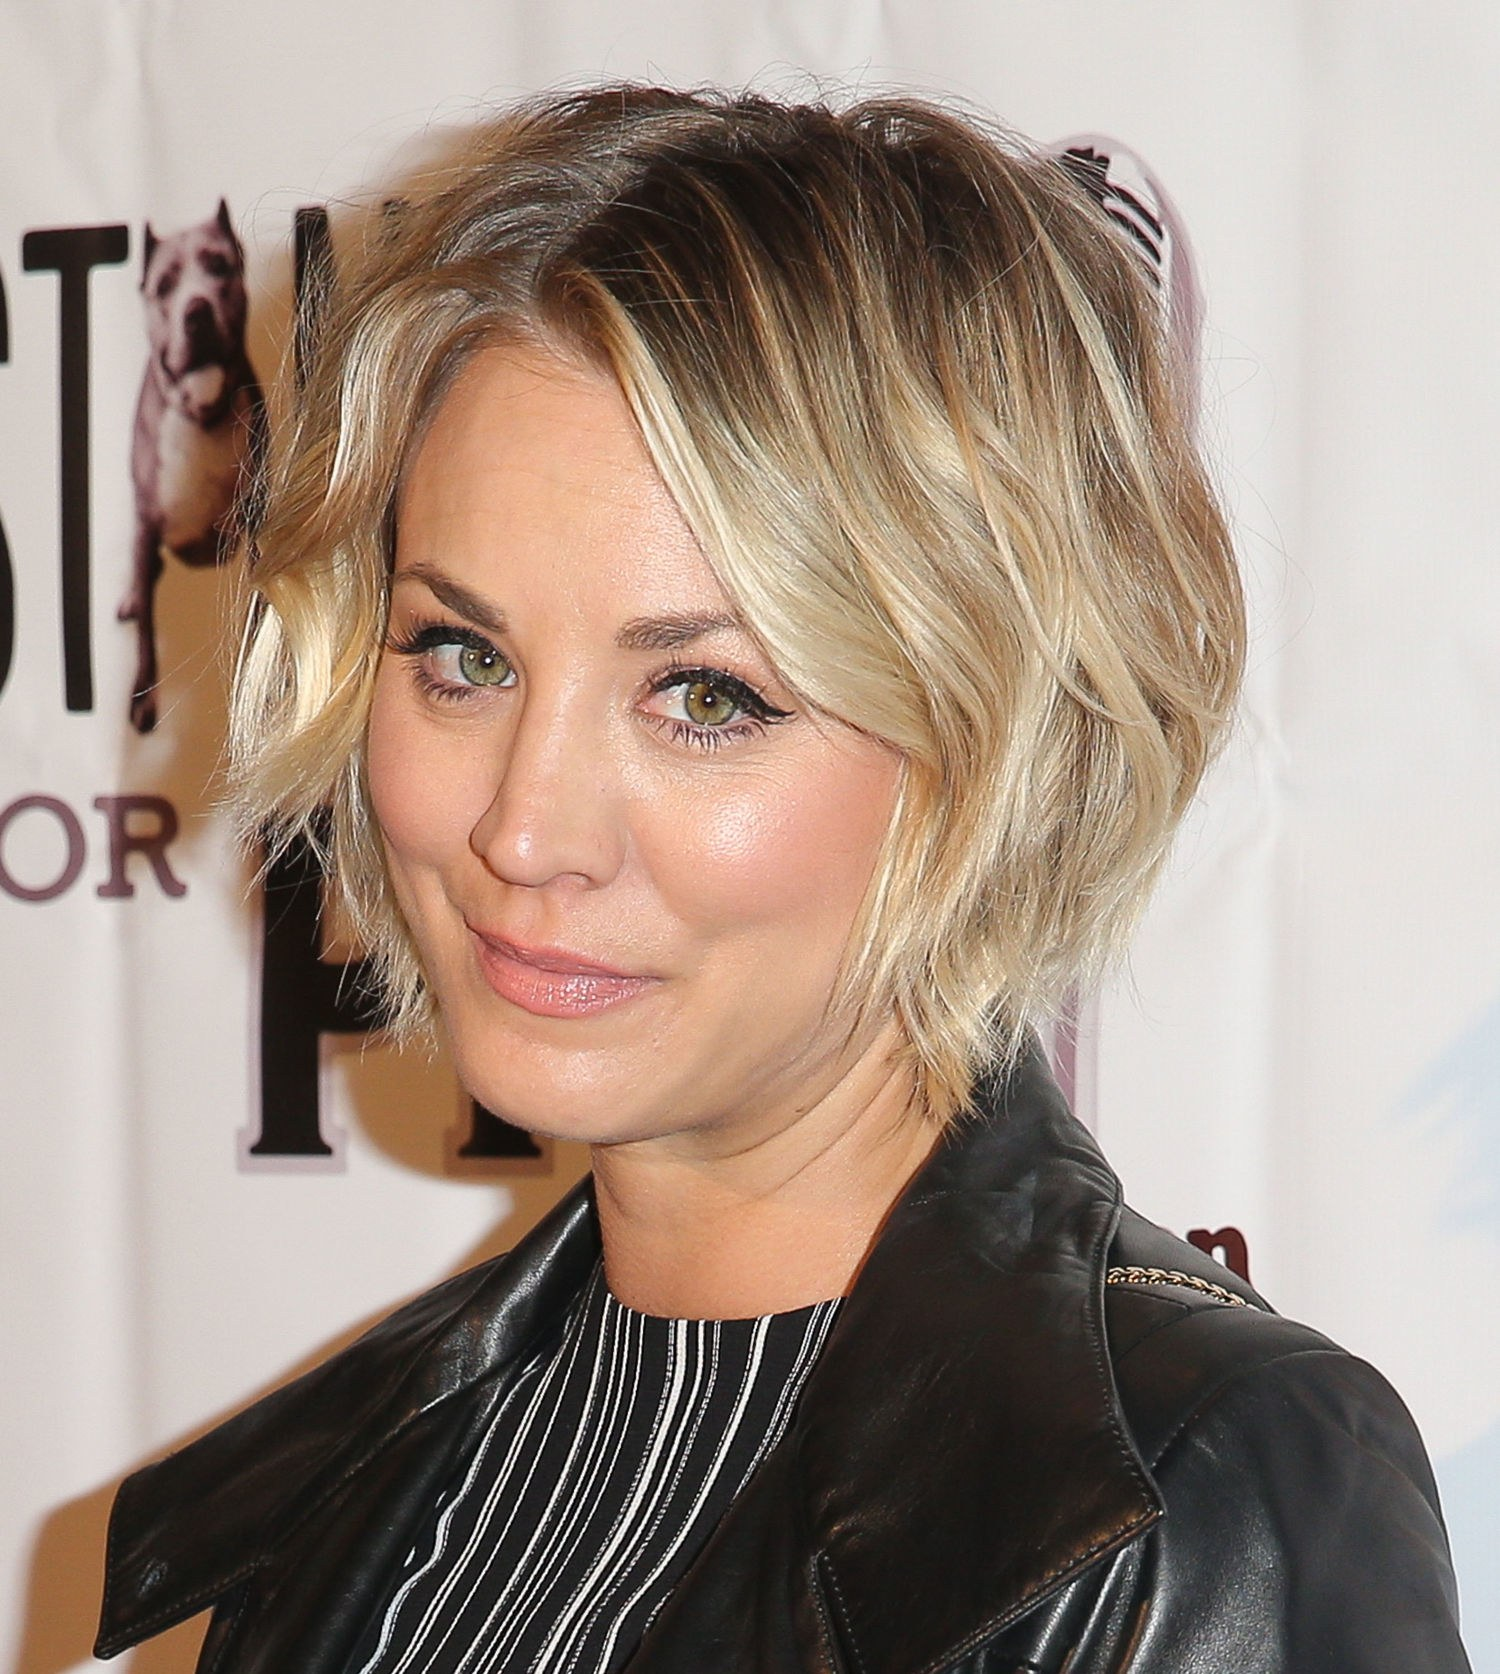 Know More About Big Bang Theory Star Kaley Christine Cuoco